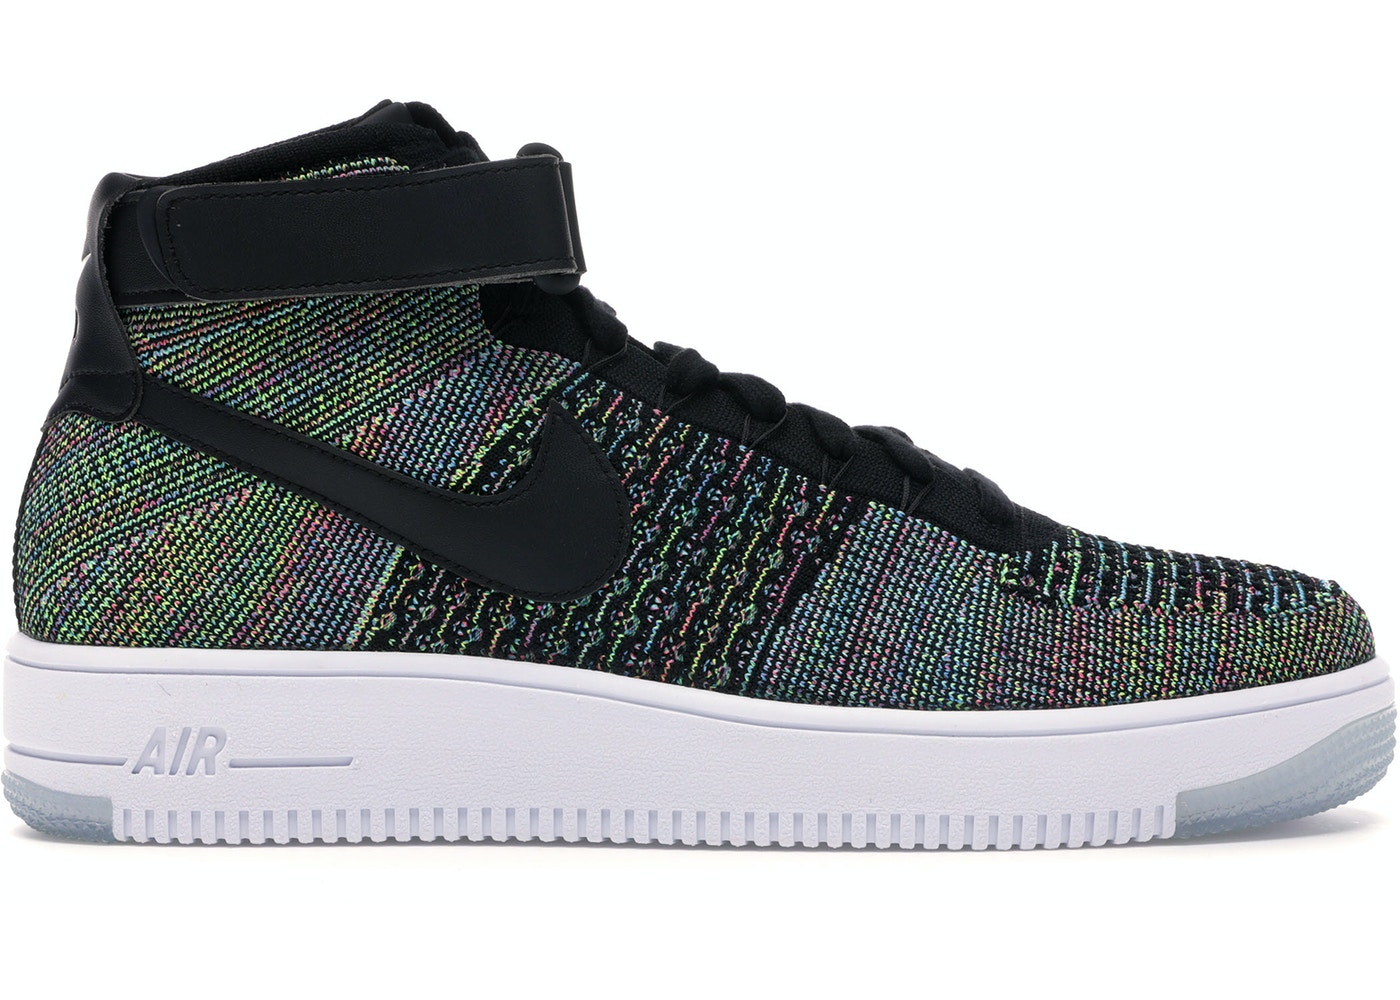 Joven neumático Turismo  Nike Air Force 1 Ultra Flyknit Mid Multi-Color 2.0 - 817420-601